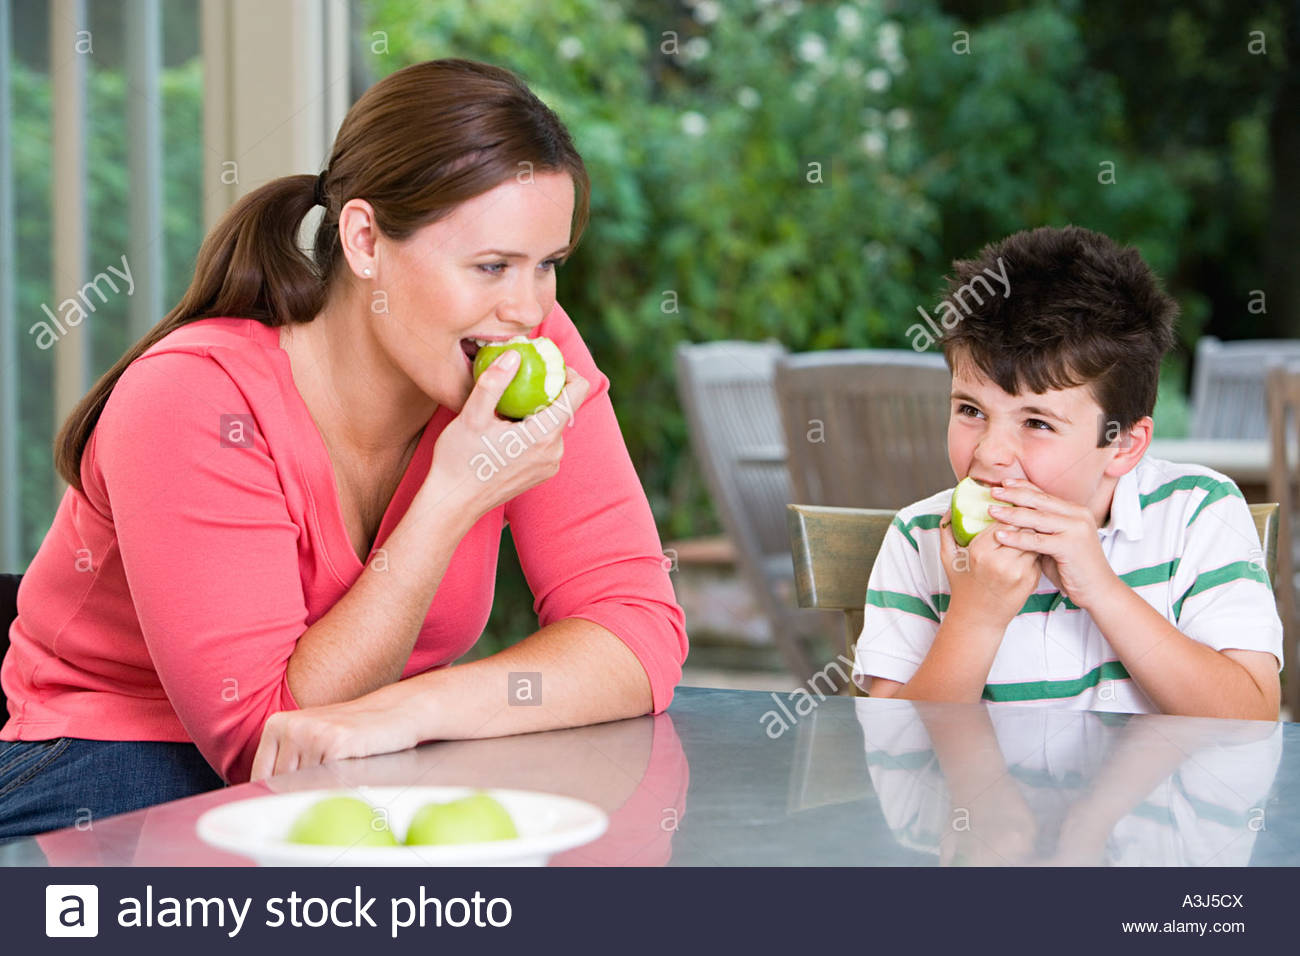 Mother and son eating apples - Stock Image